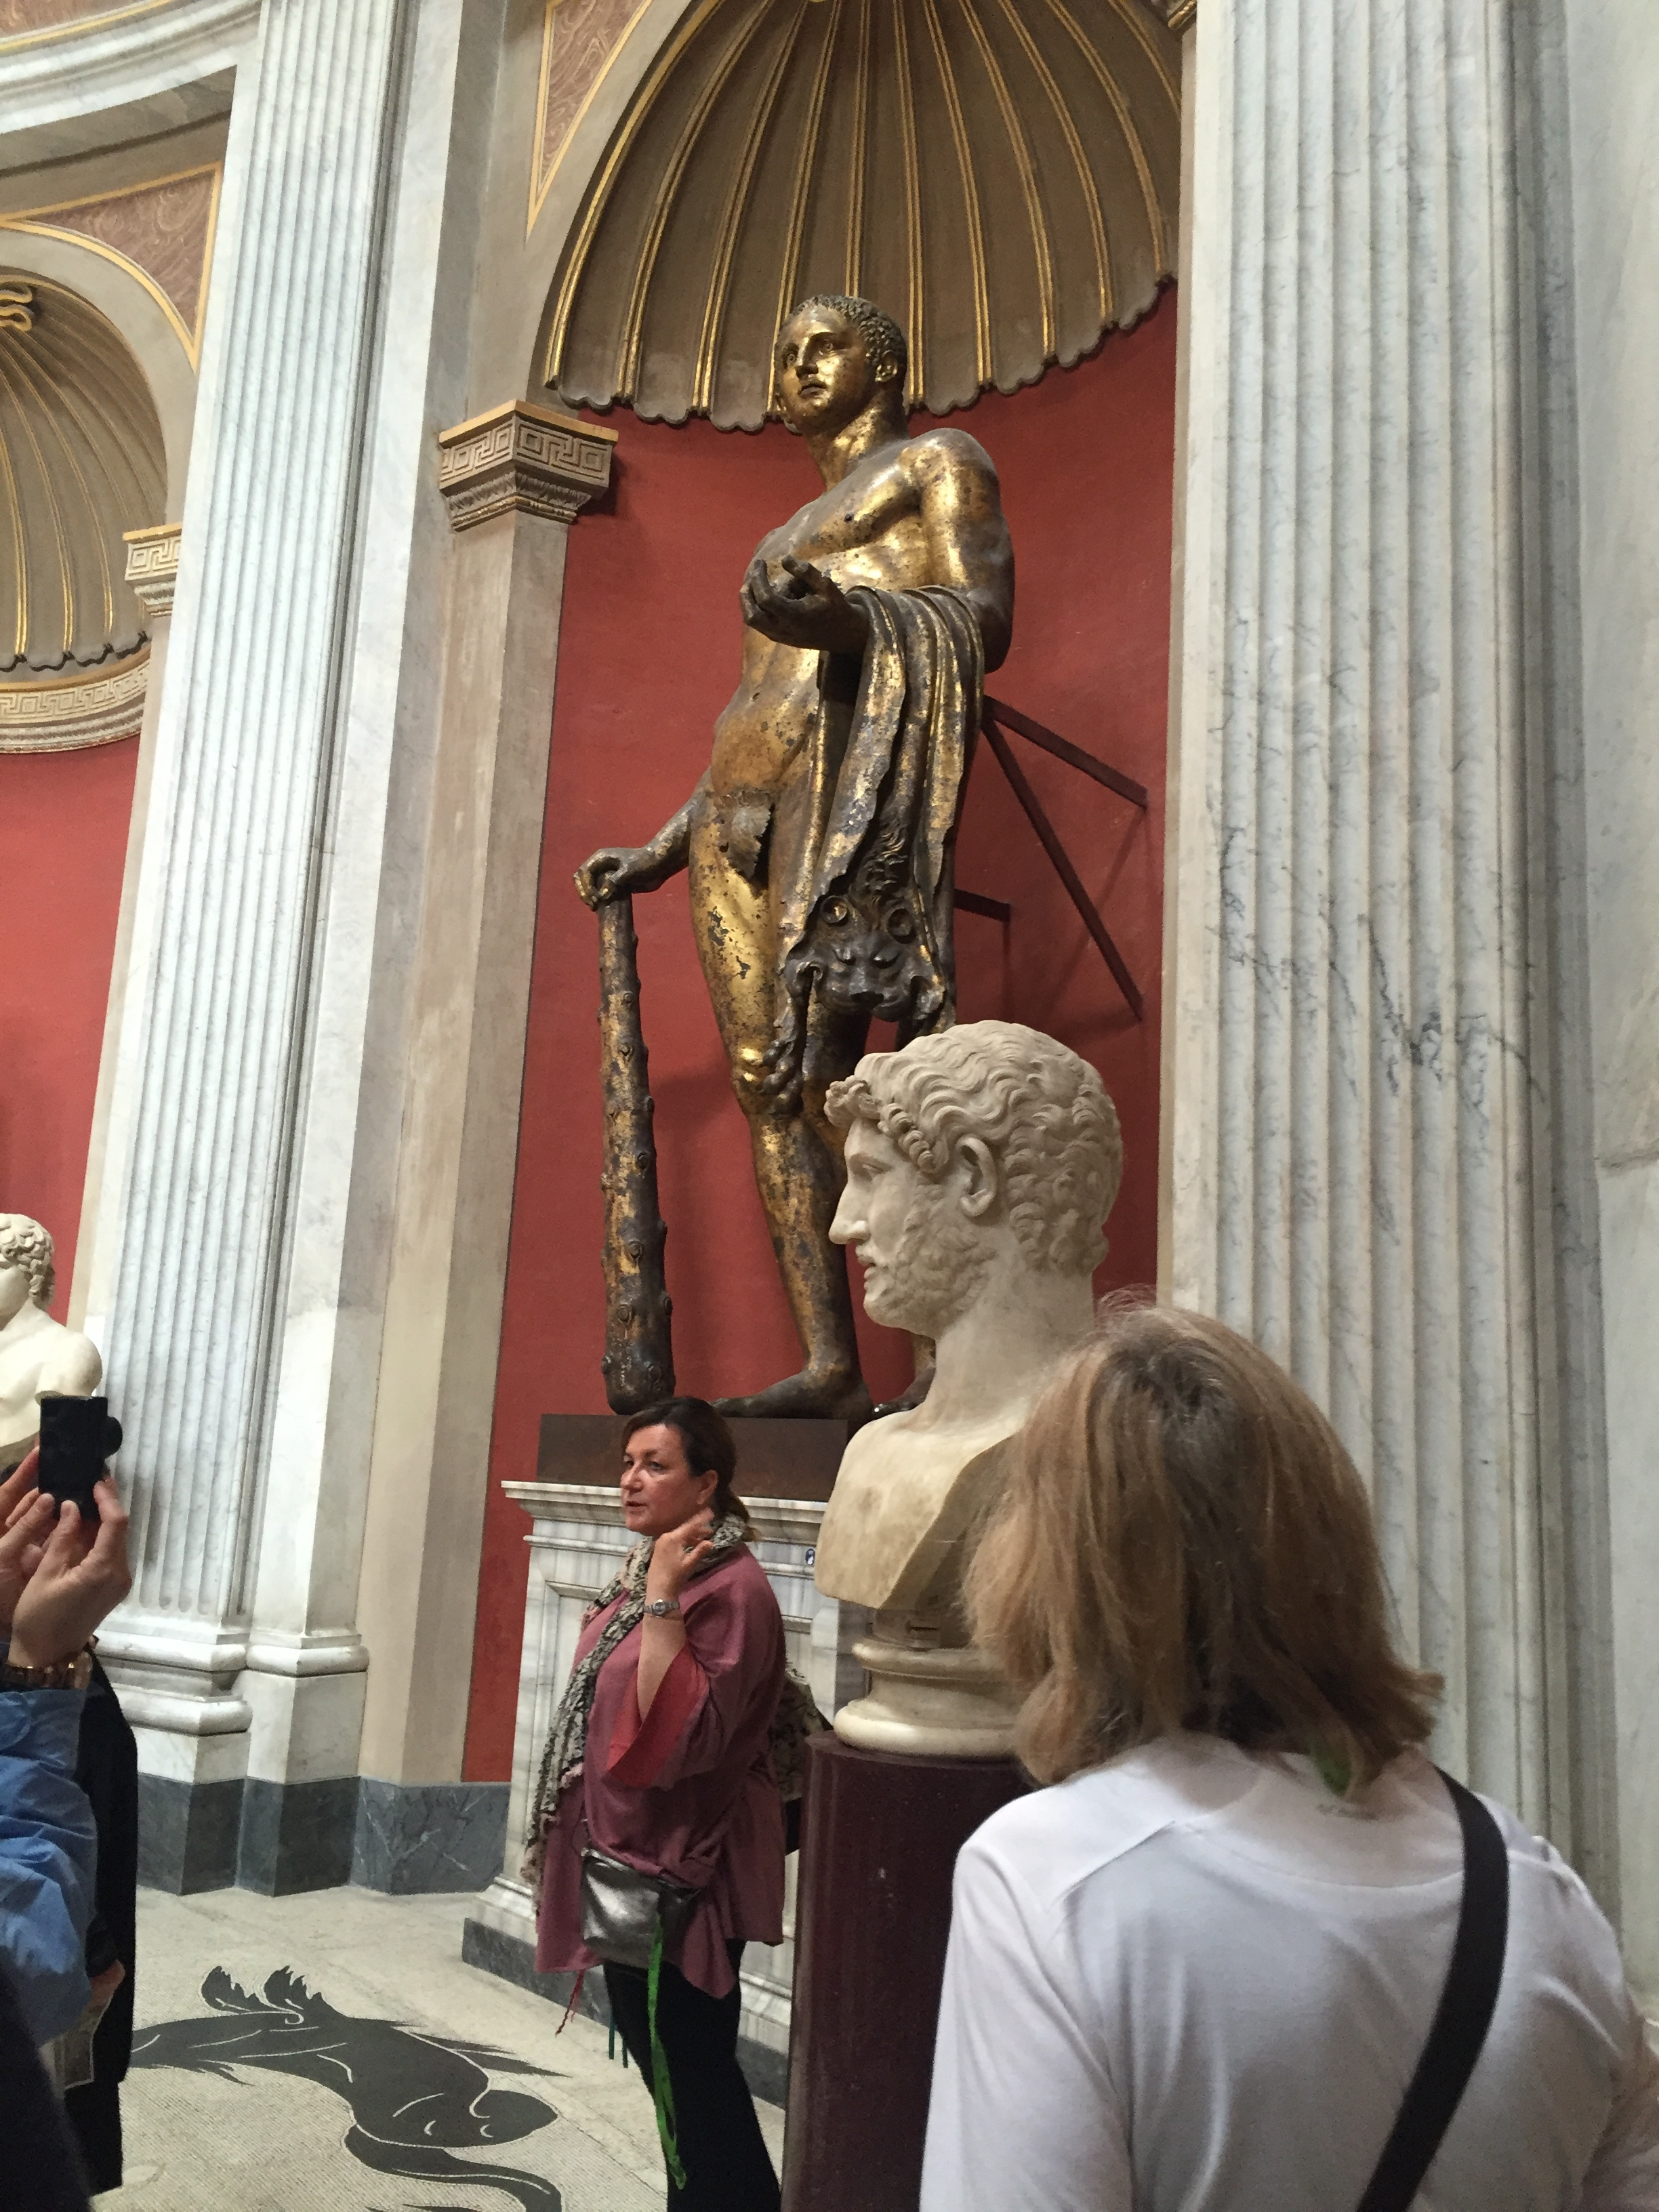 Our tour guide explained how important this statue of Hercules was. It's one of the few remaining bronze statues in Rome.